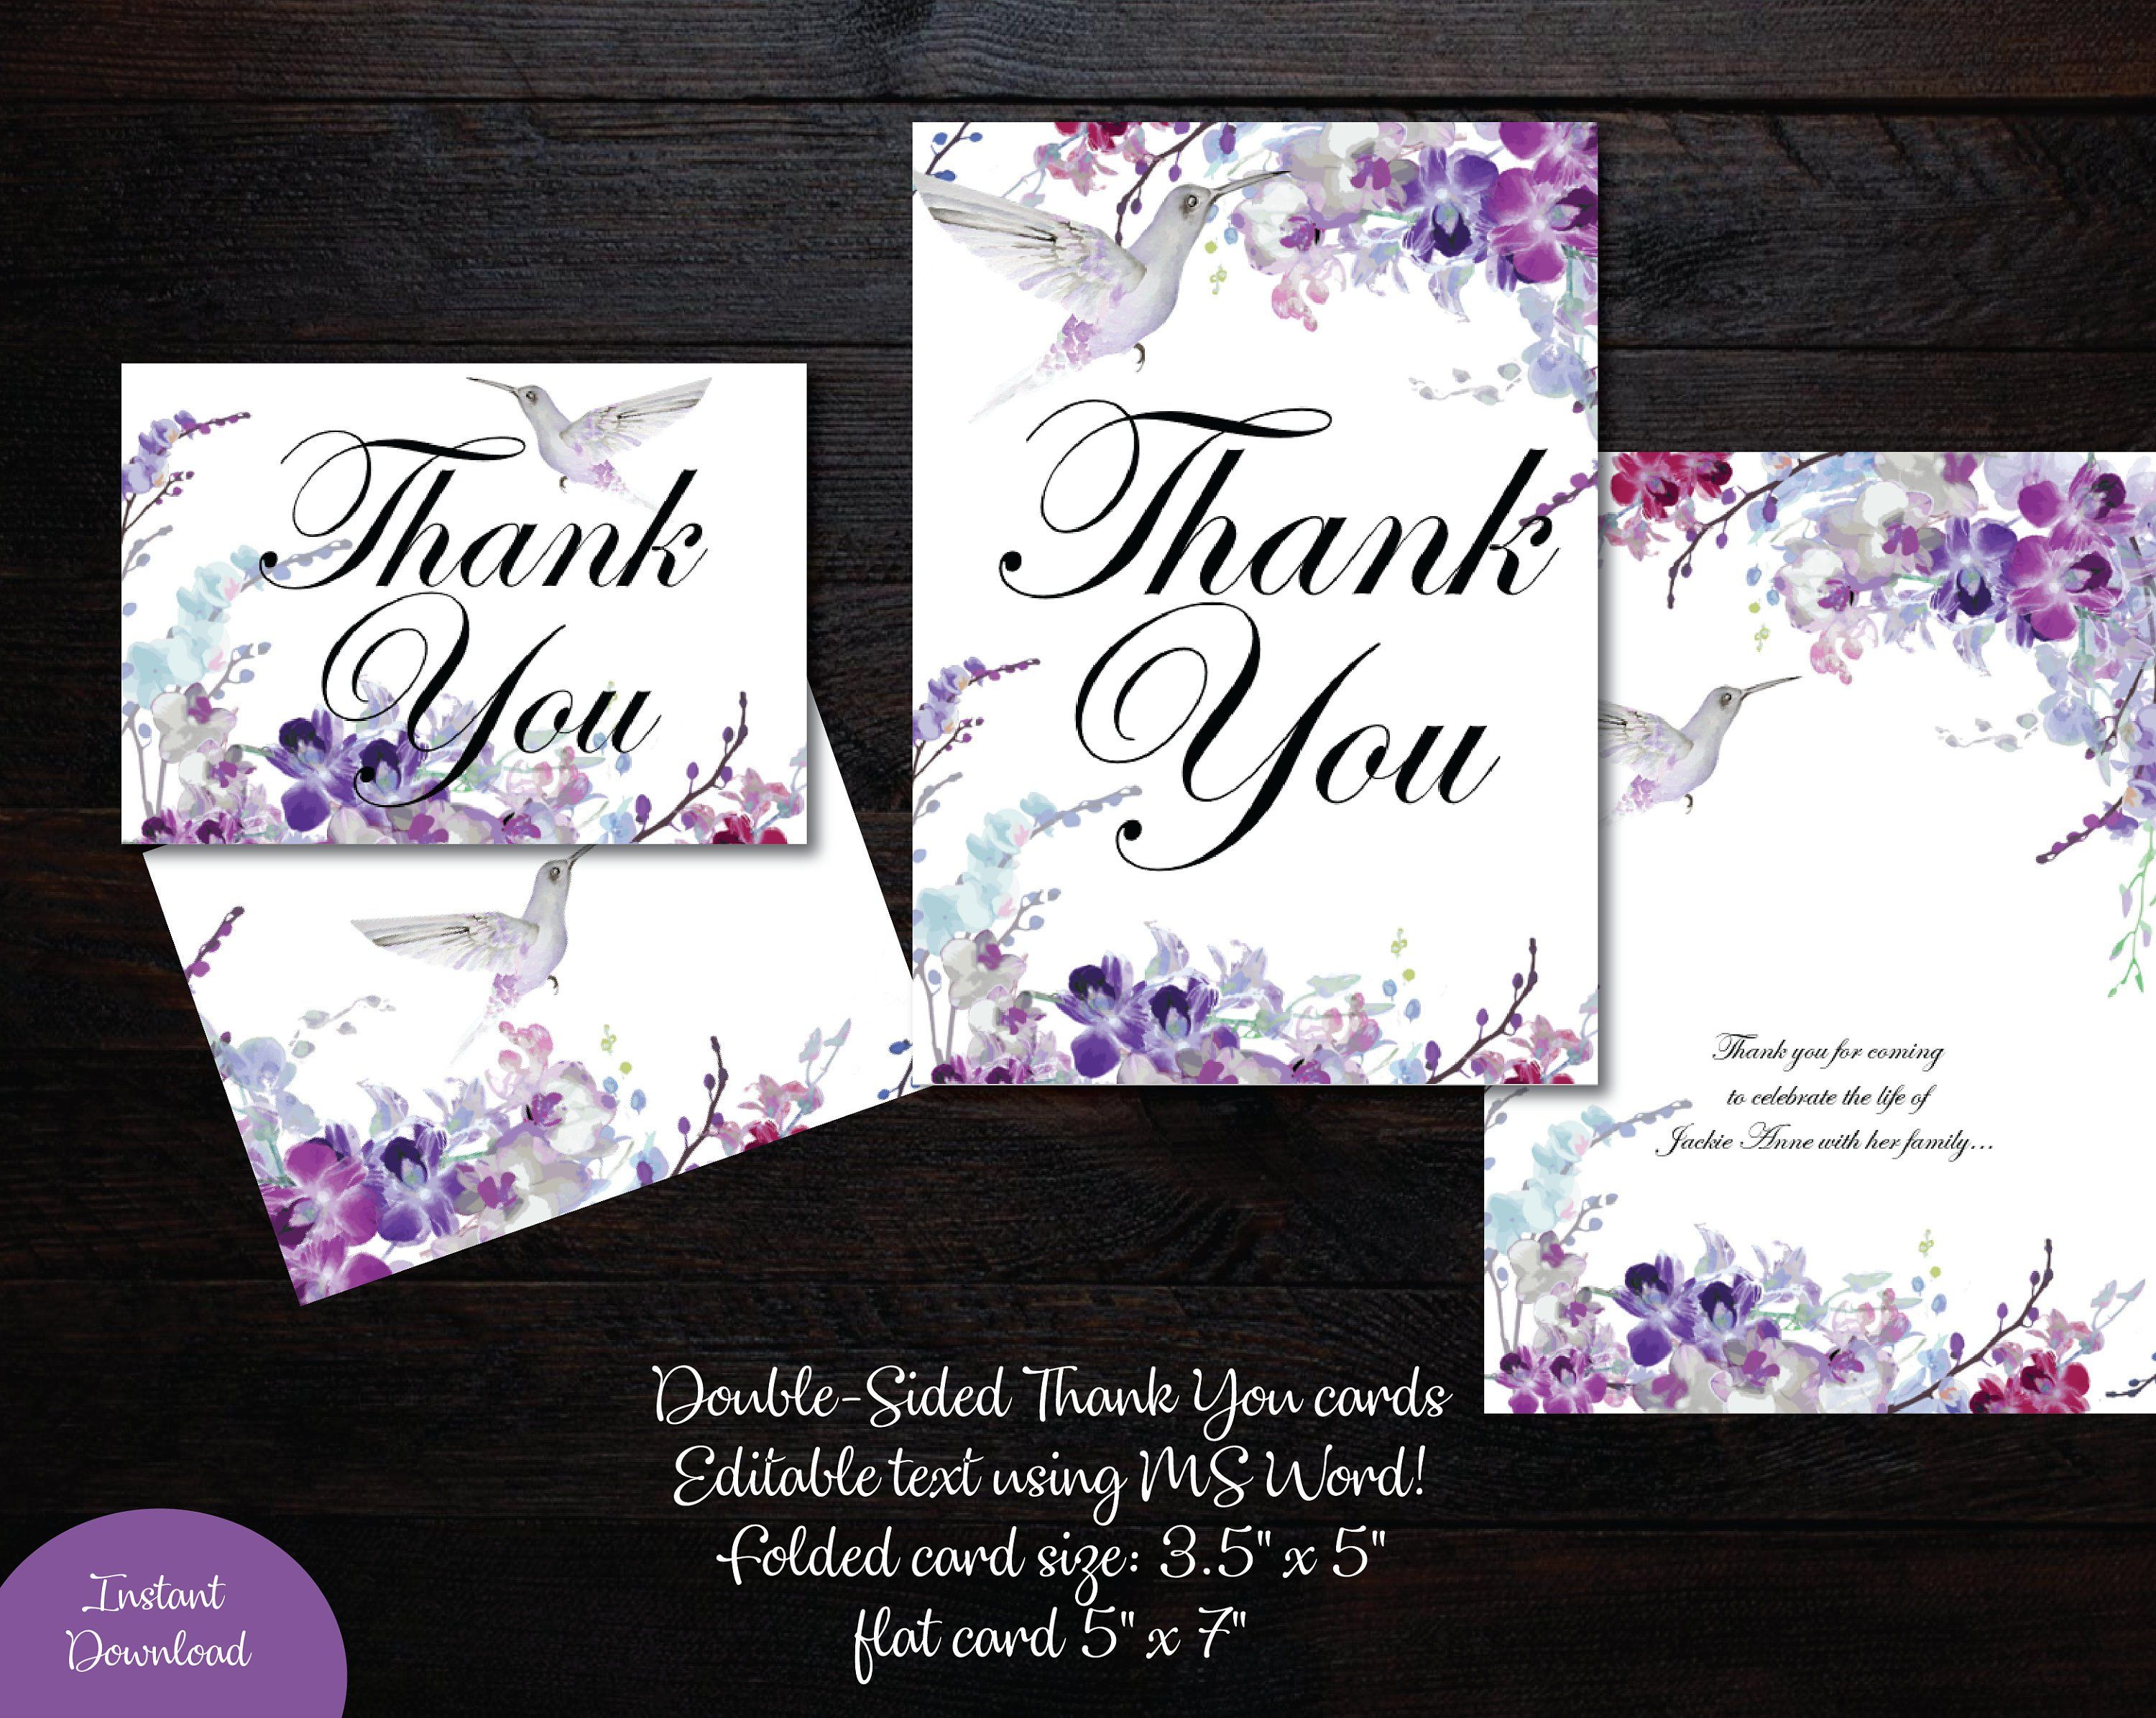 Thank You Card 5x7 Flat And Folded 3 5 X 5 Memorial Thank You Wedding Thank You Card Purple O Photo Thank You Cards Funeral Thank You Cards Diy Guest Book